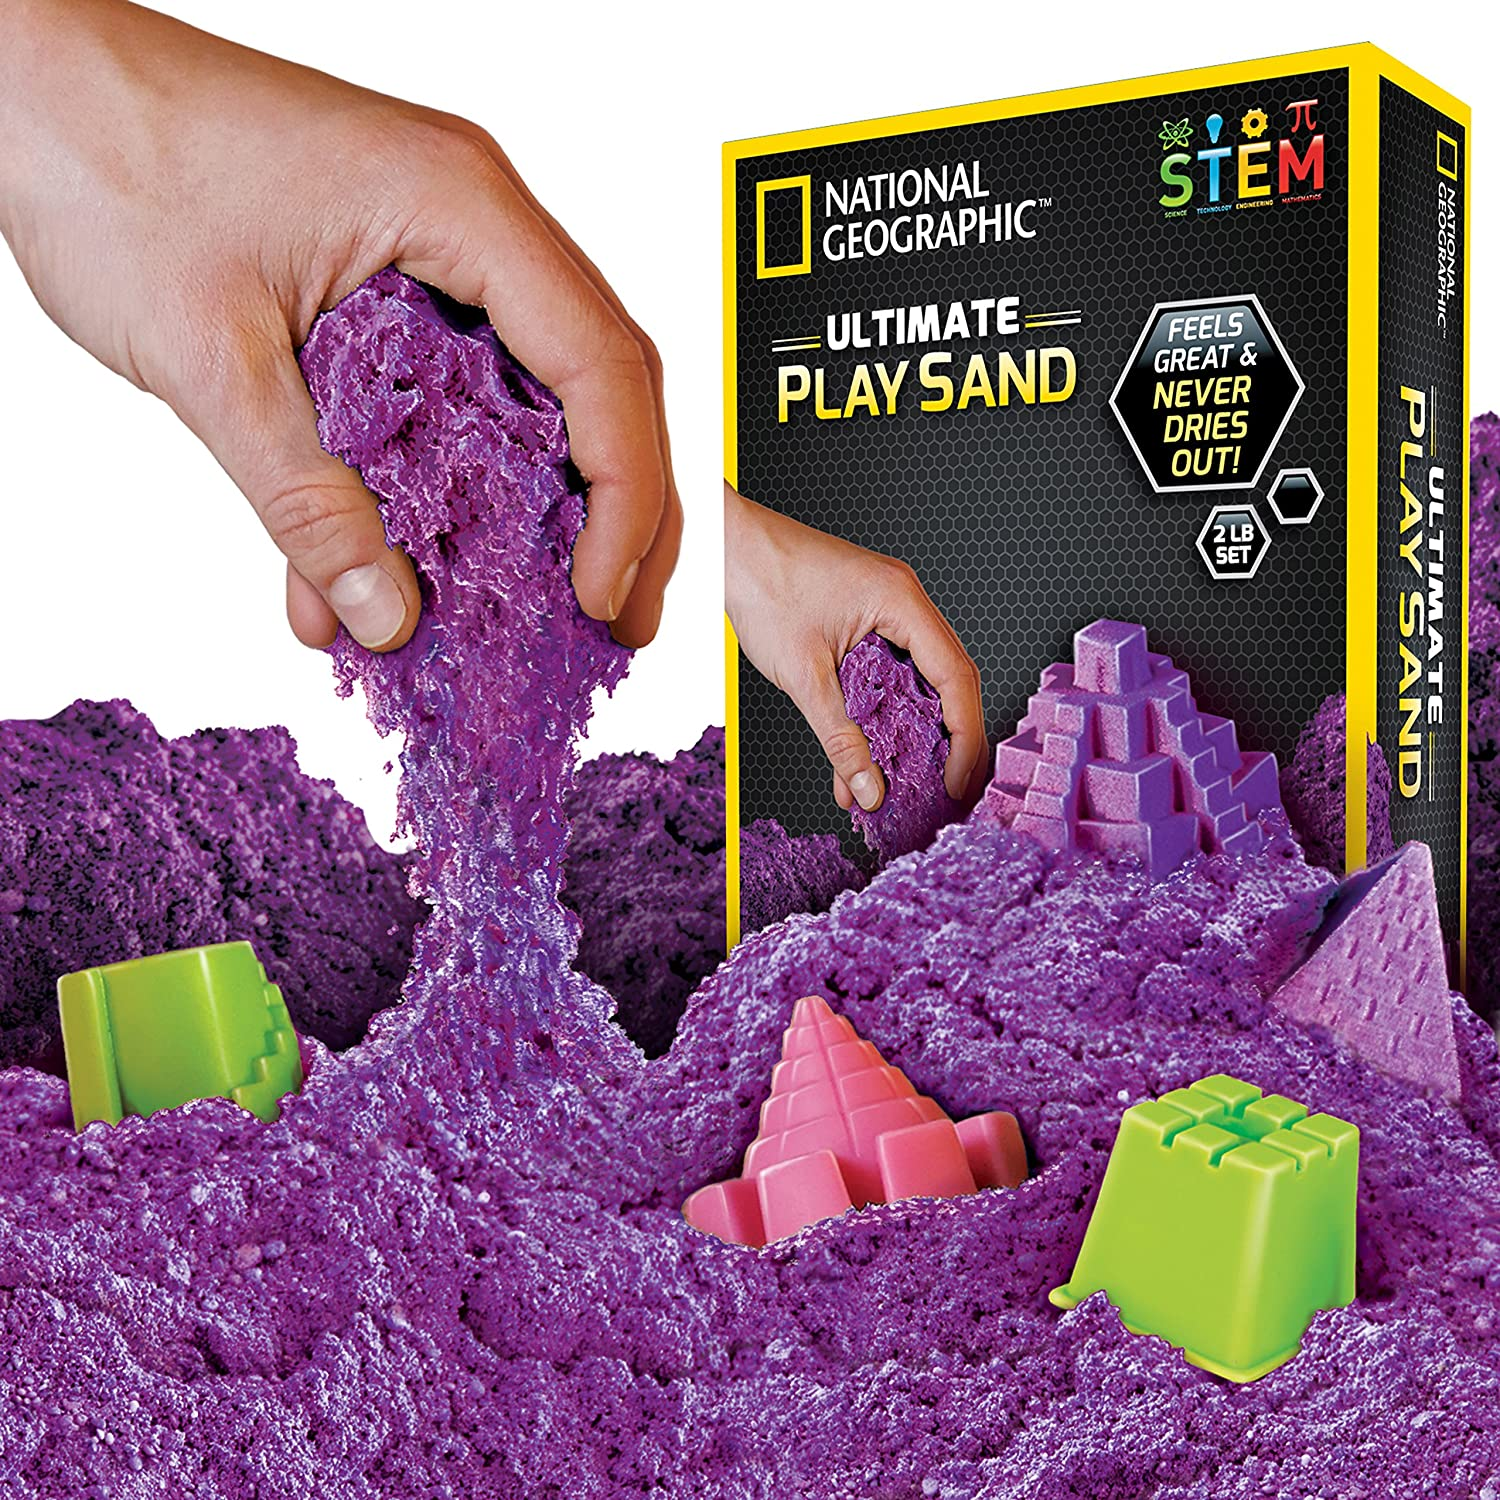 NATIONAL GEOGRAPHIC 81273 Play Sand Toy, Purple